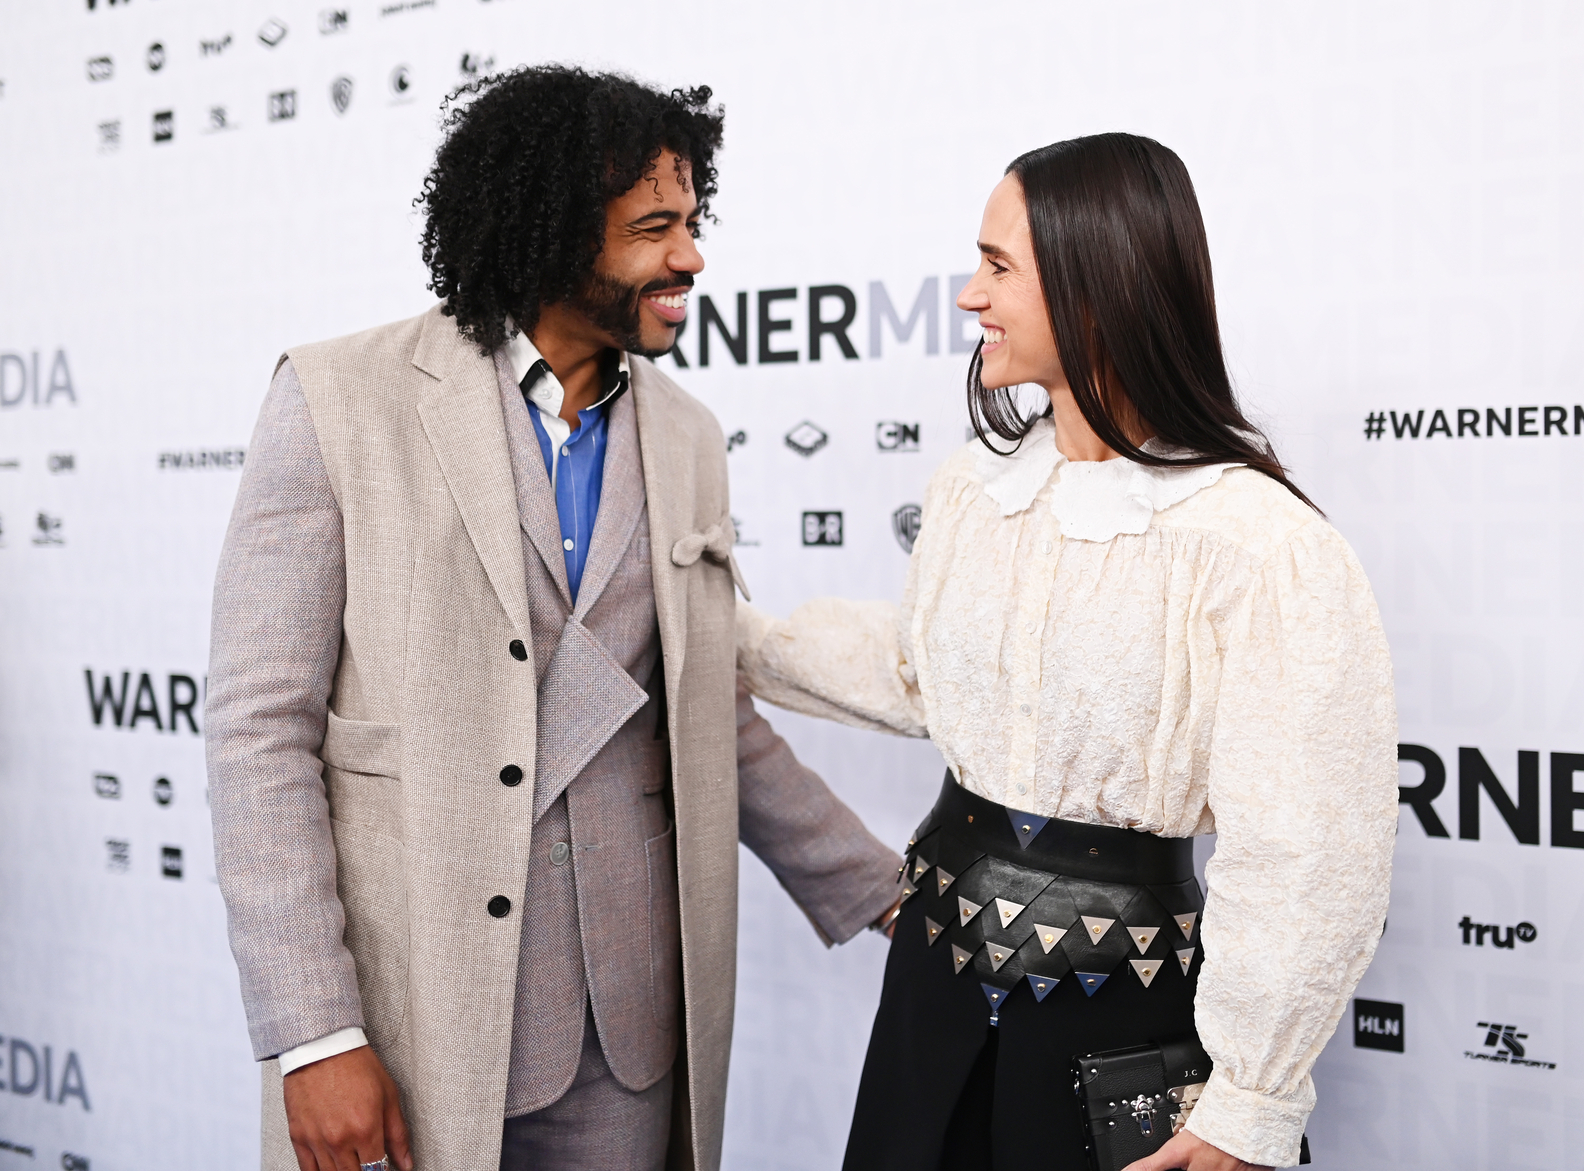 Daveed Diggs and Jennifer Connelly of TBS's Snowpiercer on the red carpet at WarnerMedia Upfront 2019 at The Theater at Madison Square Garden on May 15, 2019 in New York City.